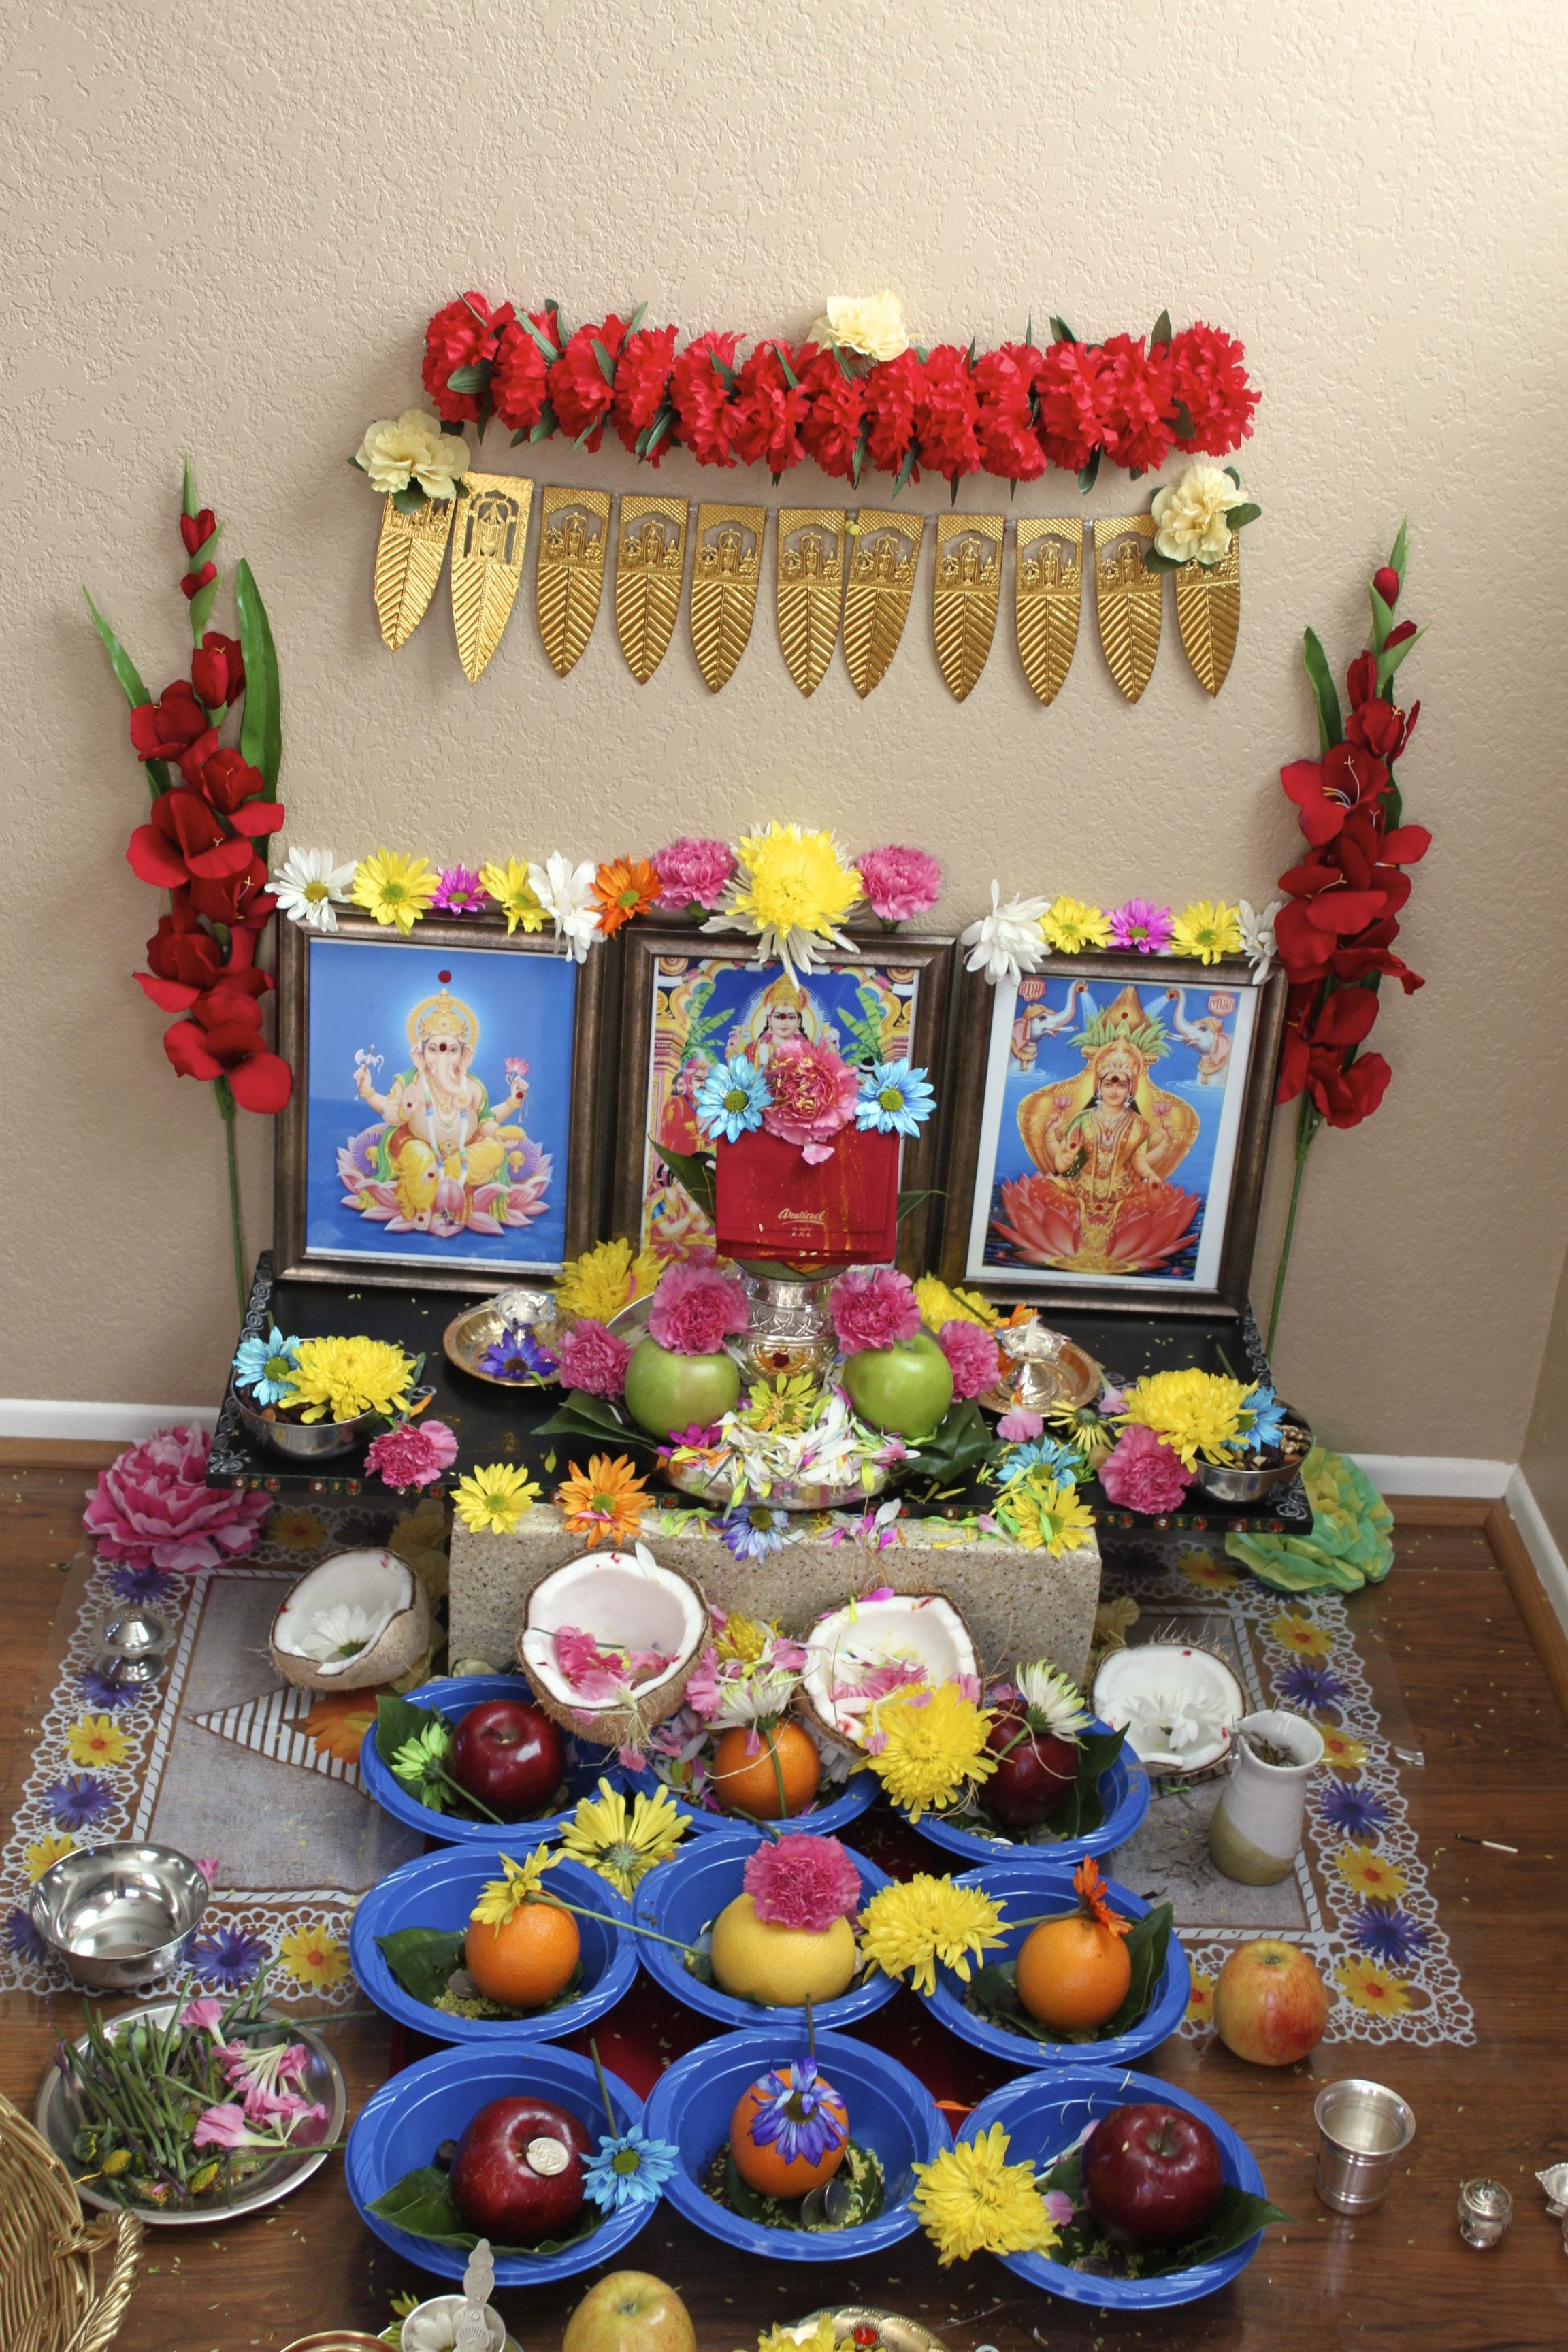 Satyanarayan Pooja Performed For General Peace And